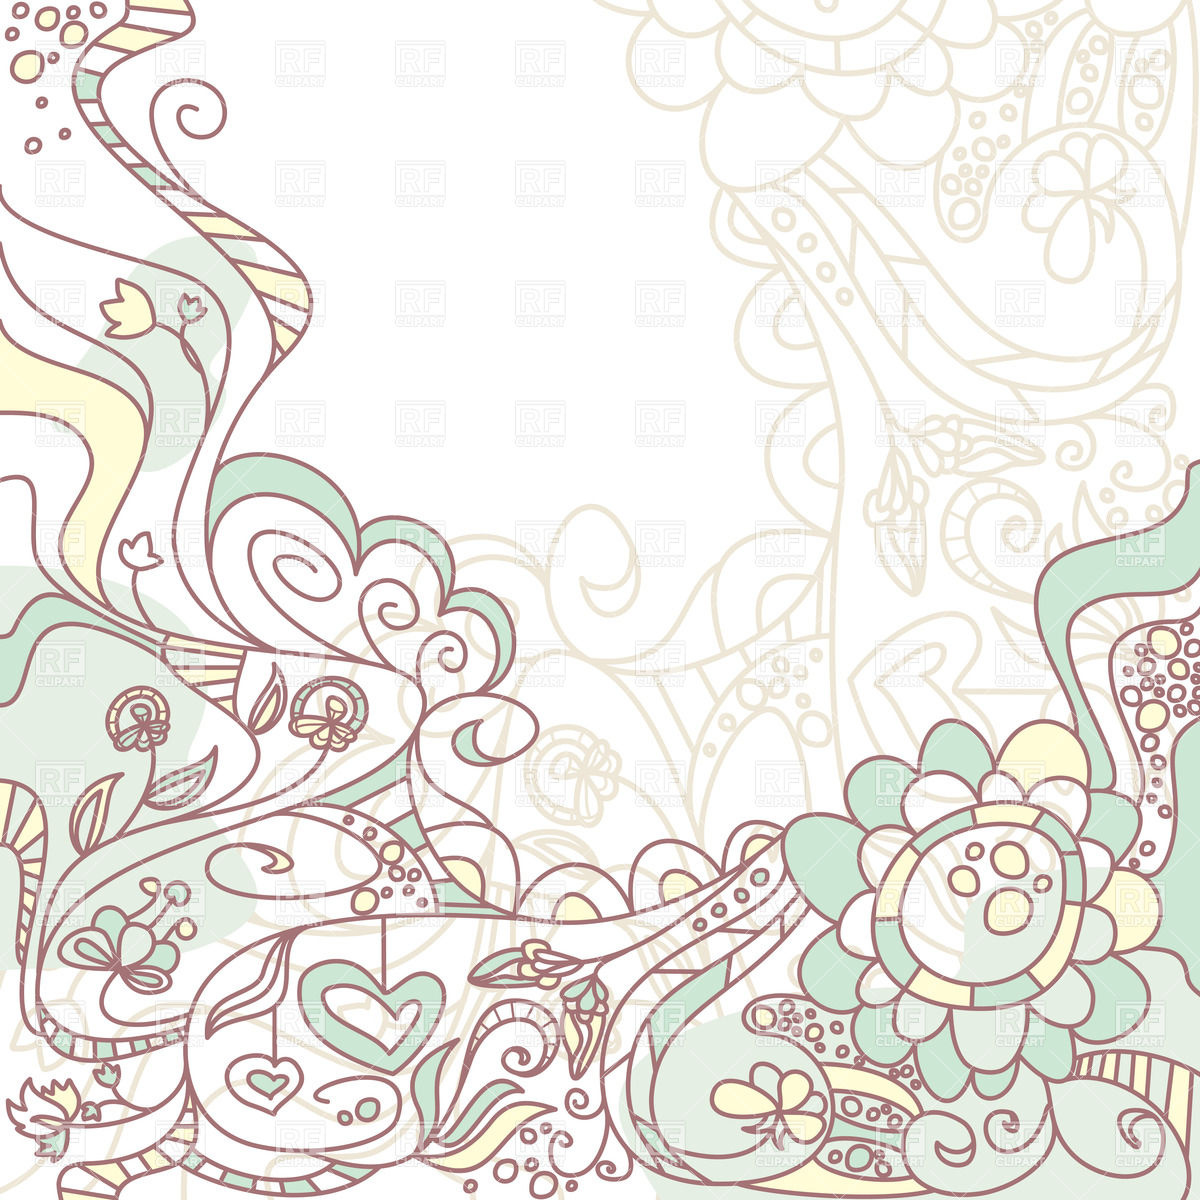 Abstract background with outline flowers Vector Image of 1200x1200